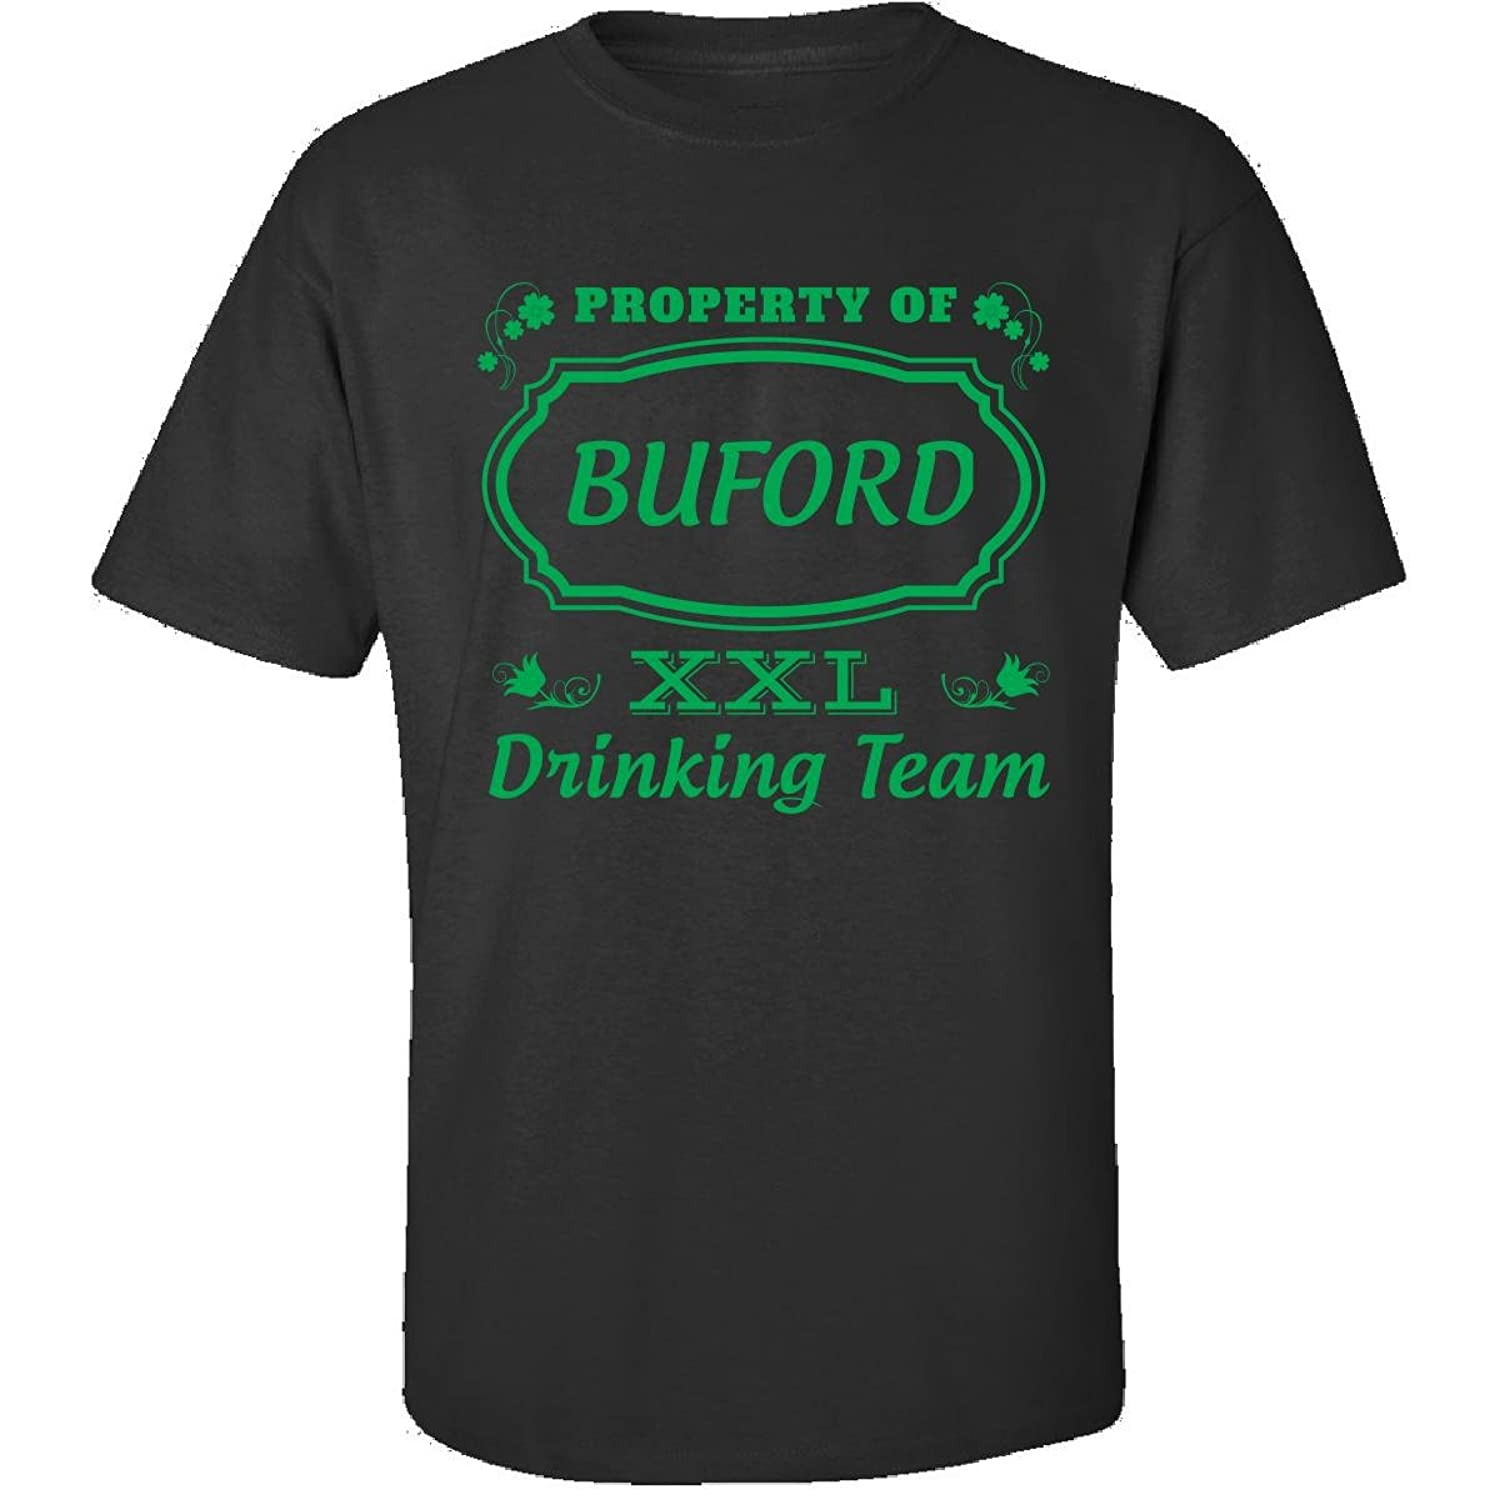 Property Of Buford St Patrick Day Beer Drinking Team - Adult Shirt